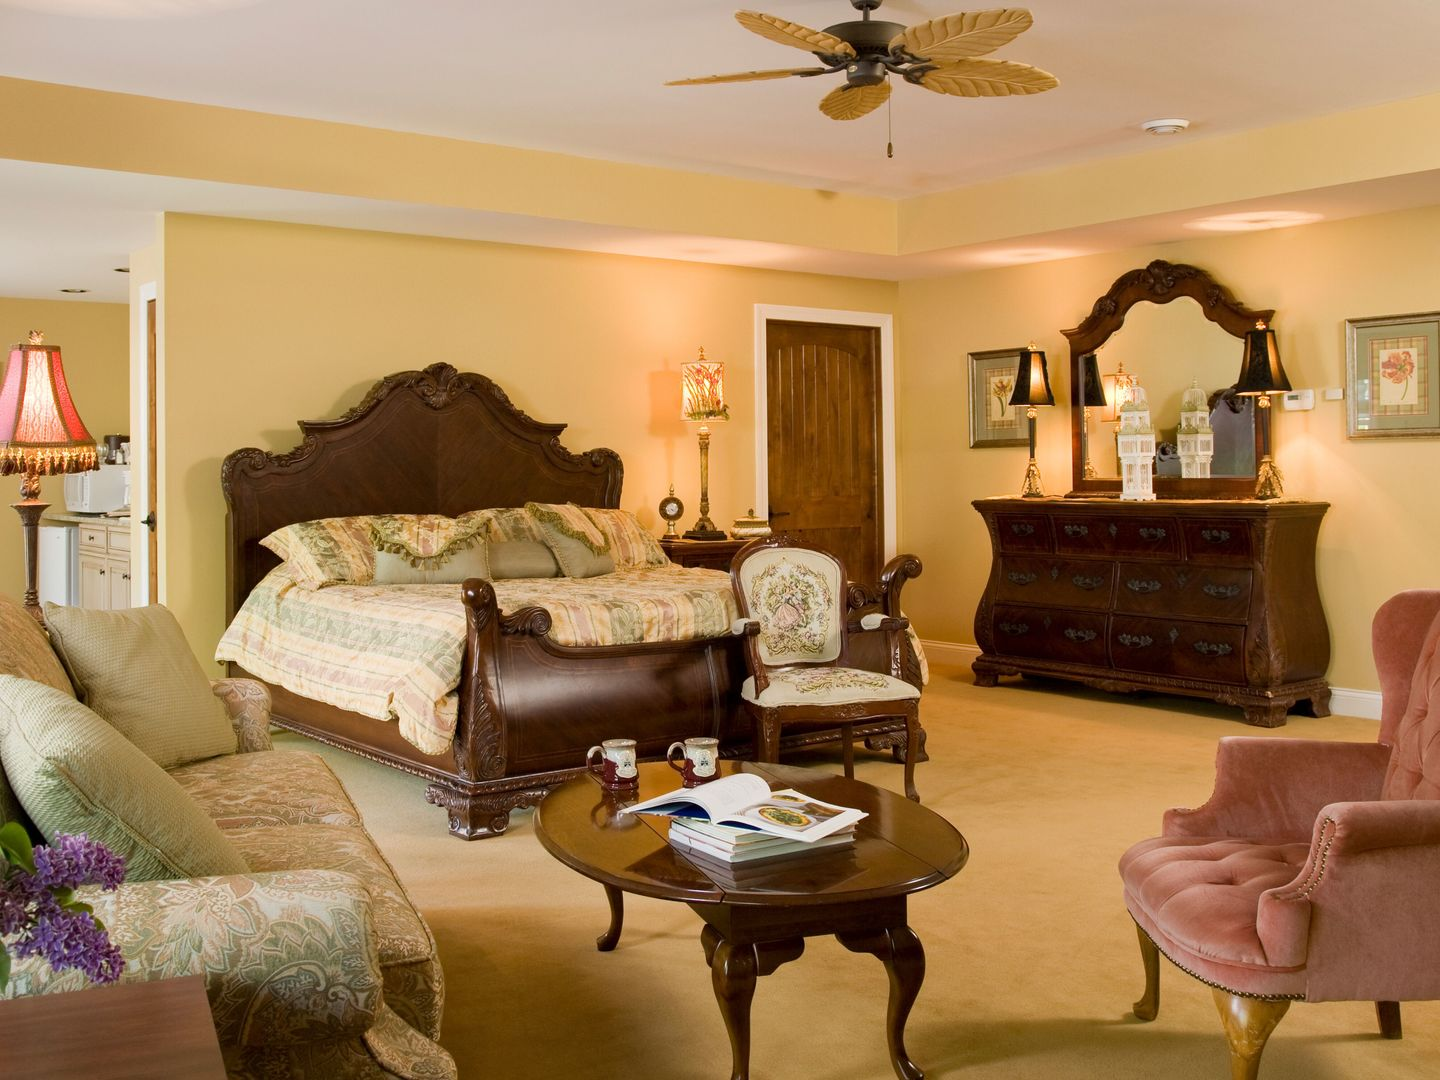 A living room filled with furniture and a fire place at Goldmoor Inn.